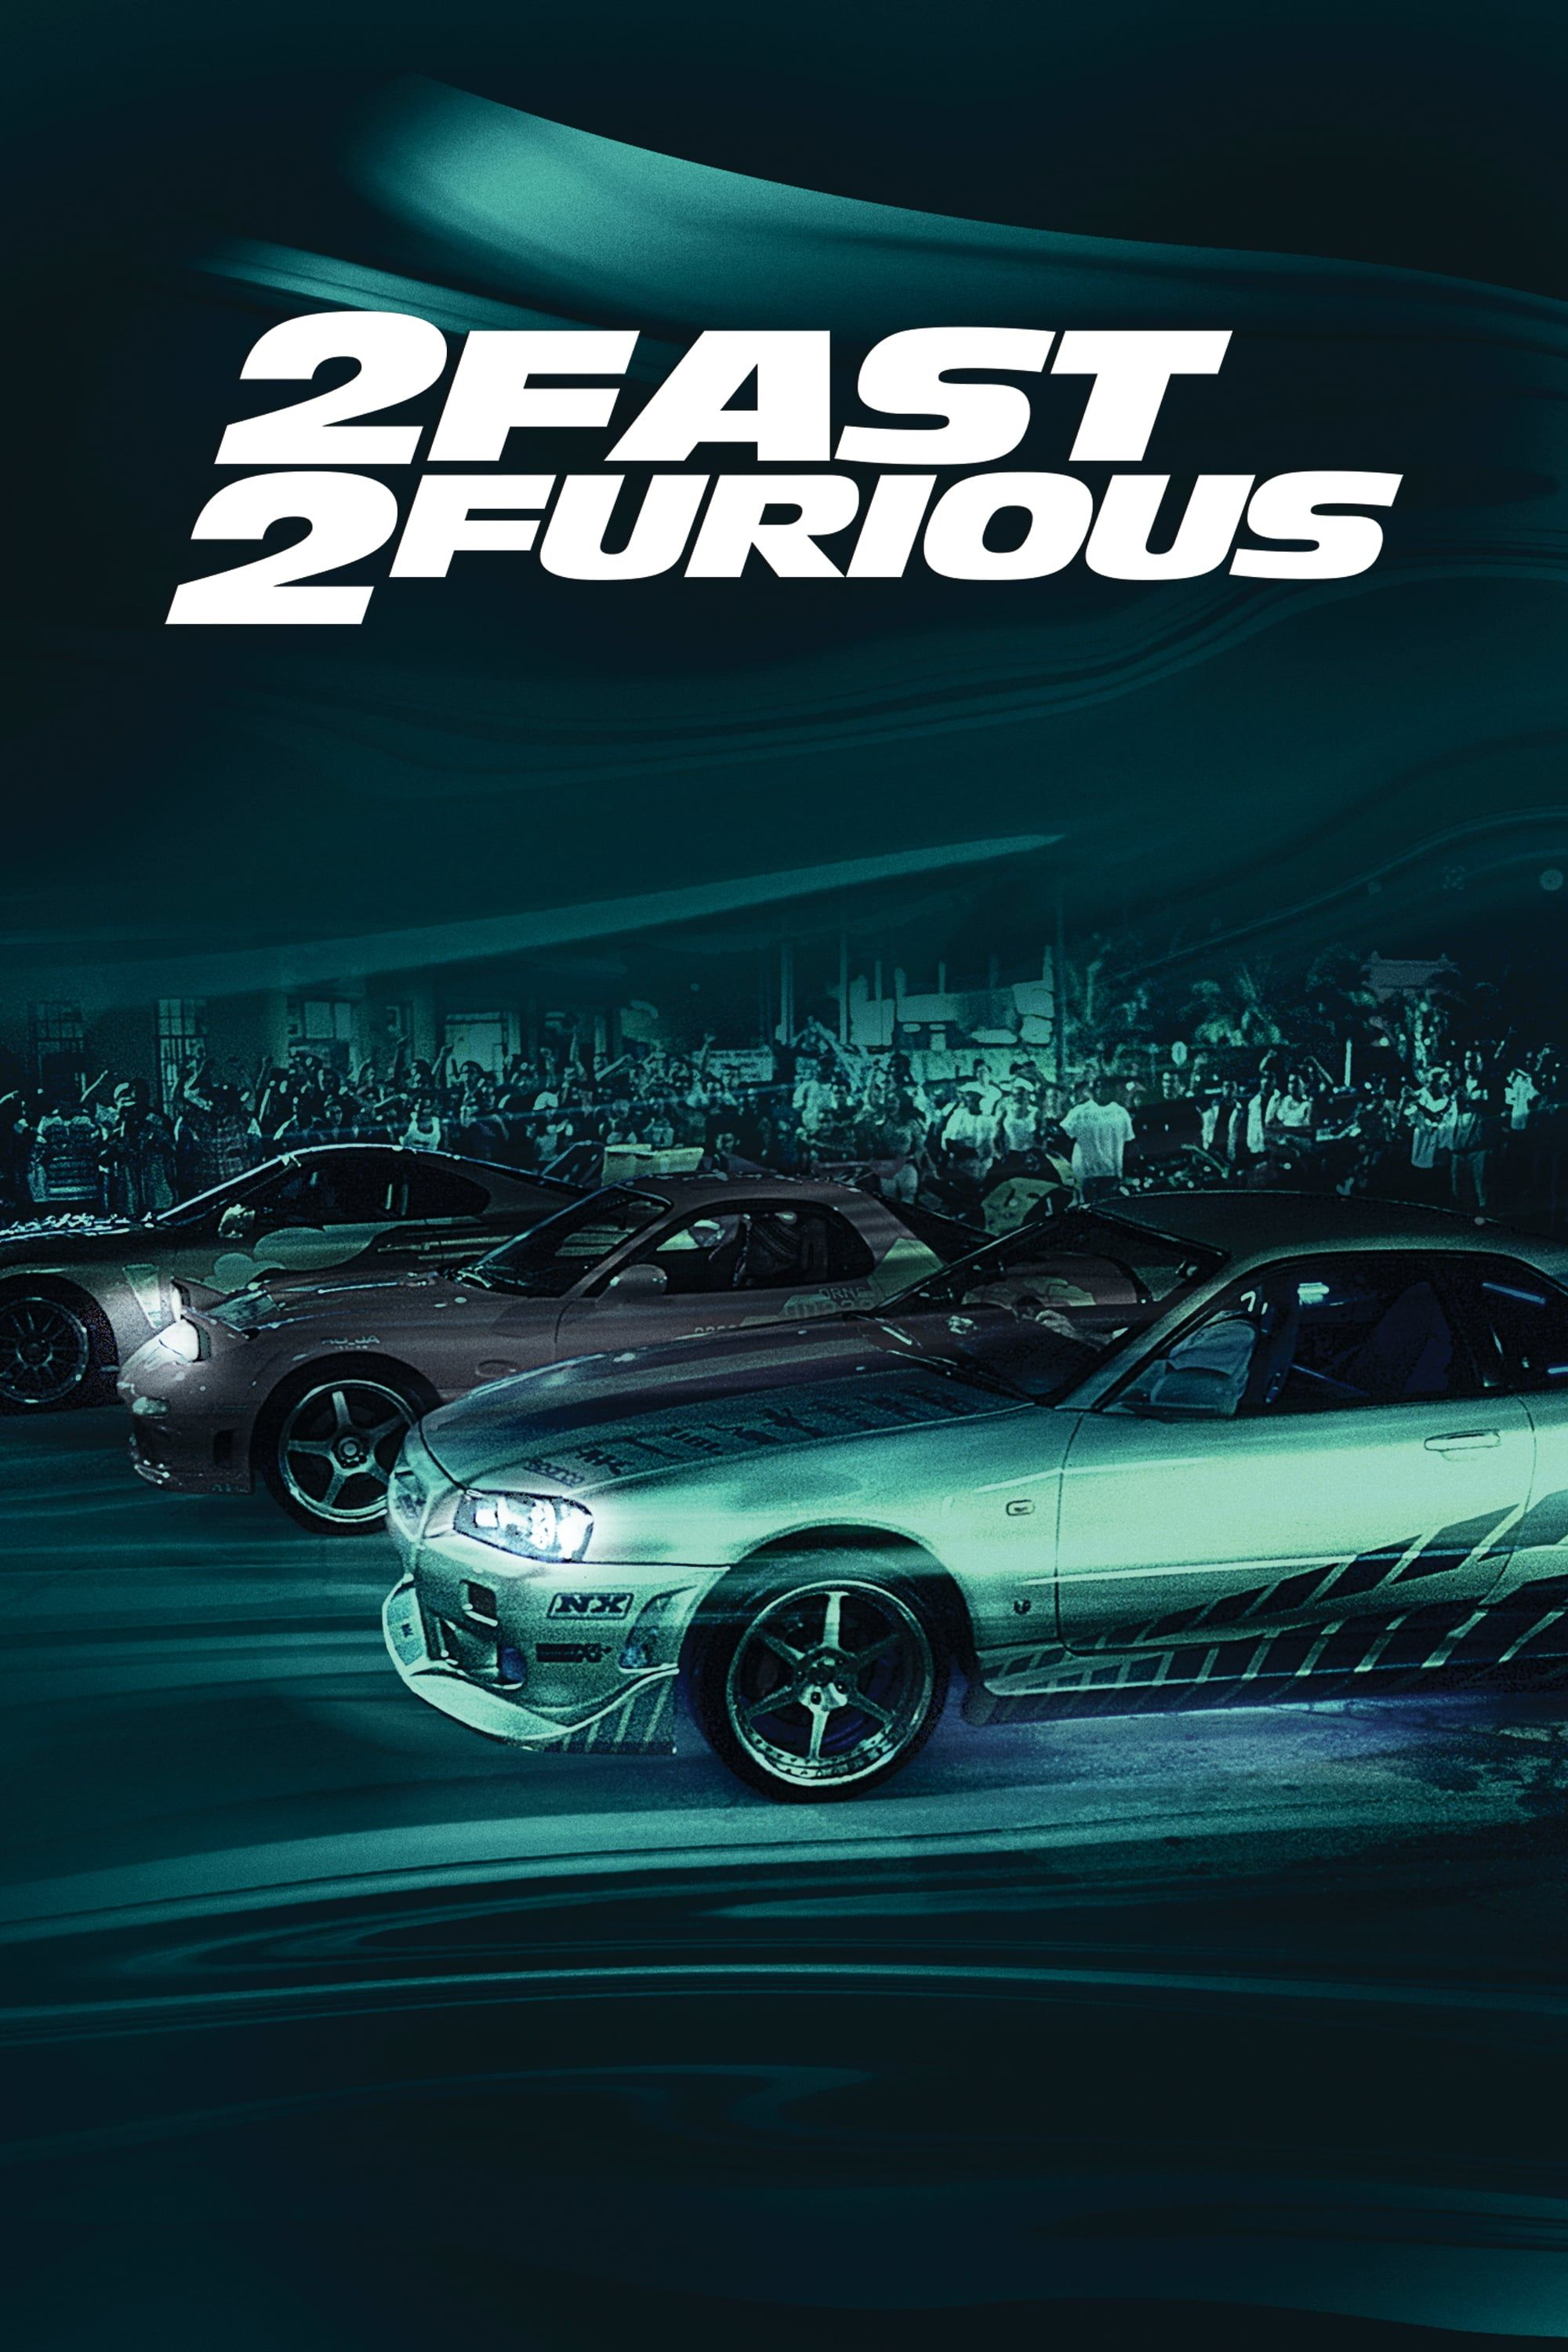 2 Fast 2 Furious 2003 John Singleton Tv Series Online Fast And Furious Furious Movie